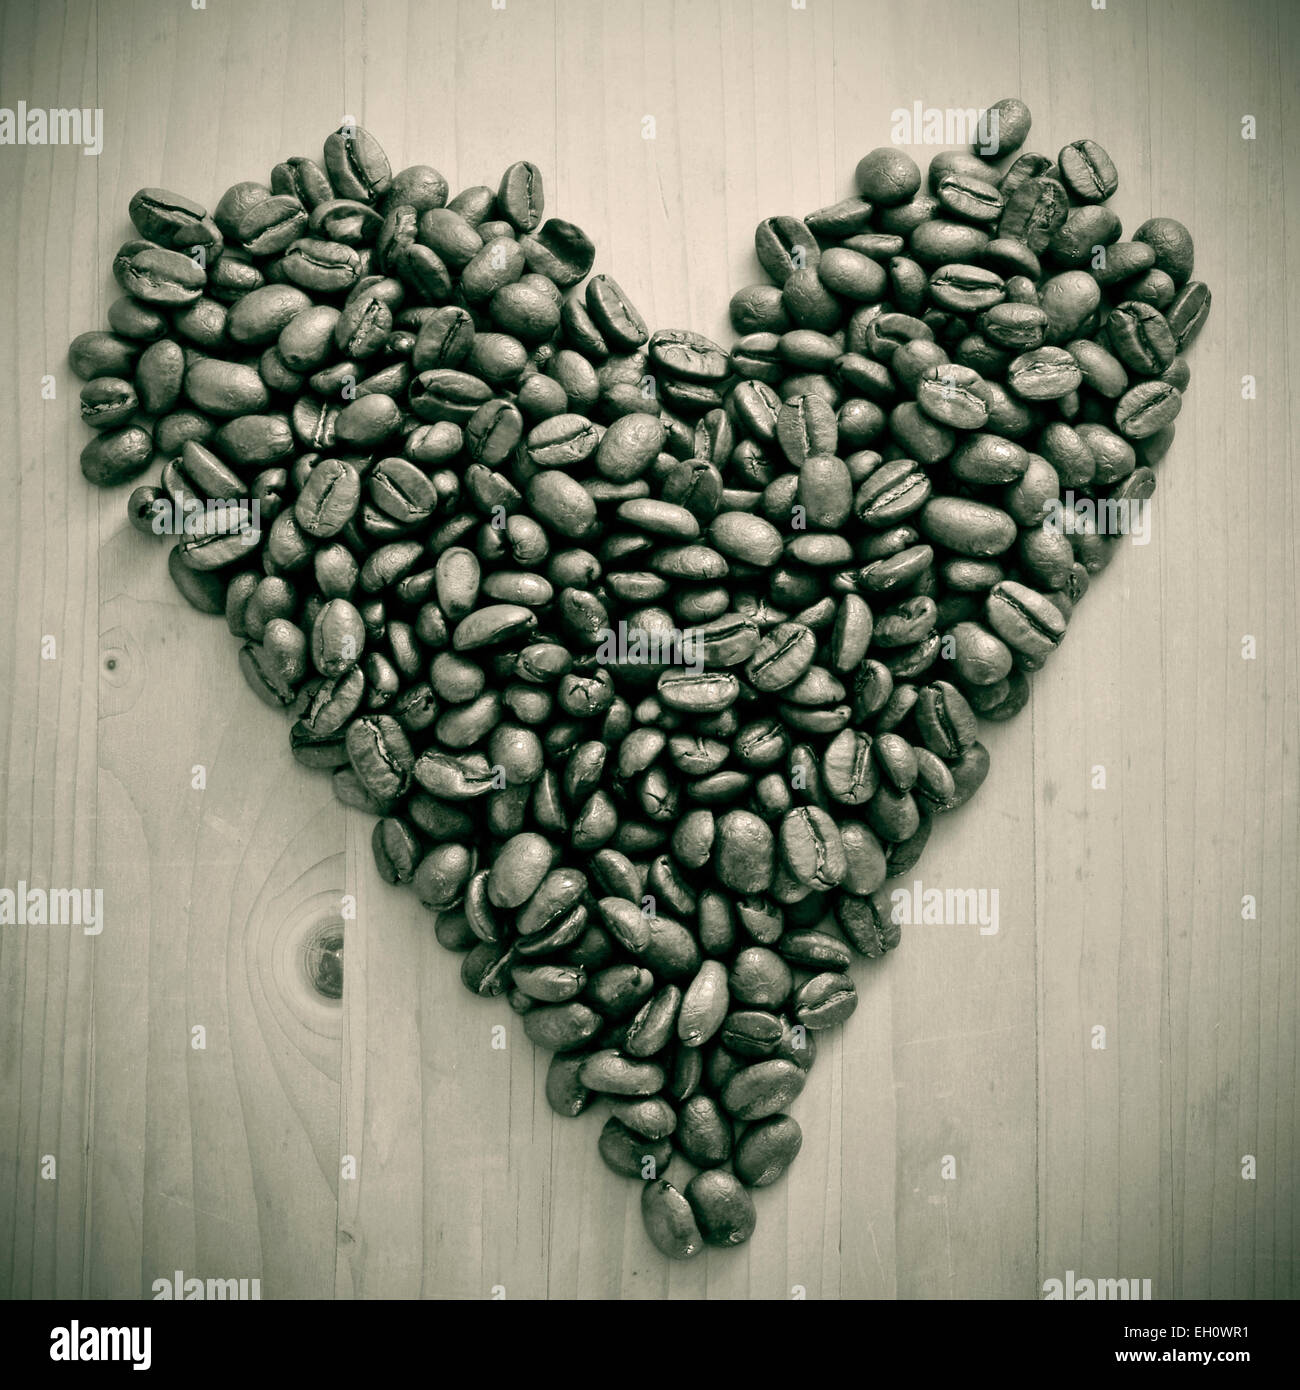 a pile of roasted coffee beans forming a heart, on a wooden table , in black and white - Stock Image